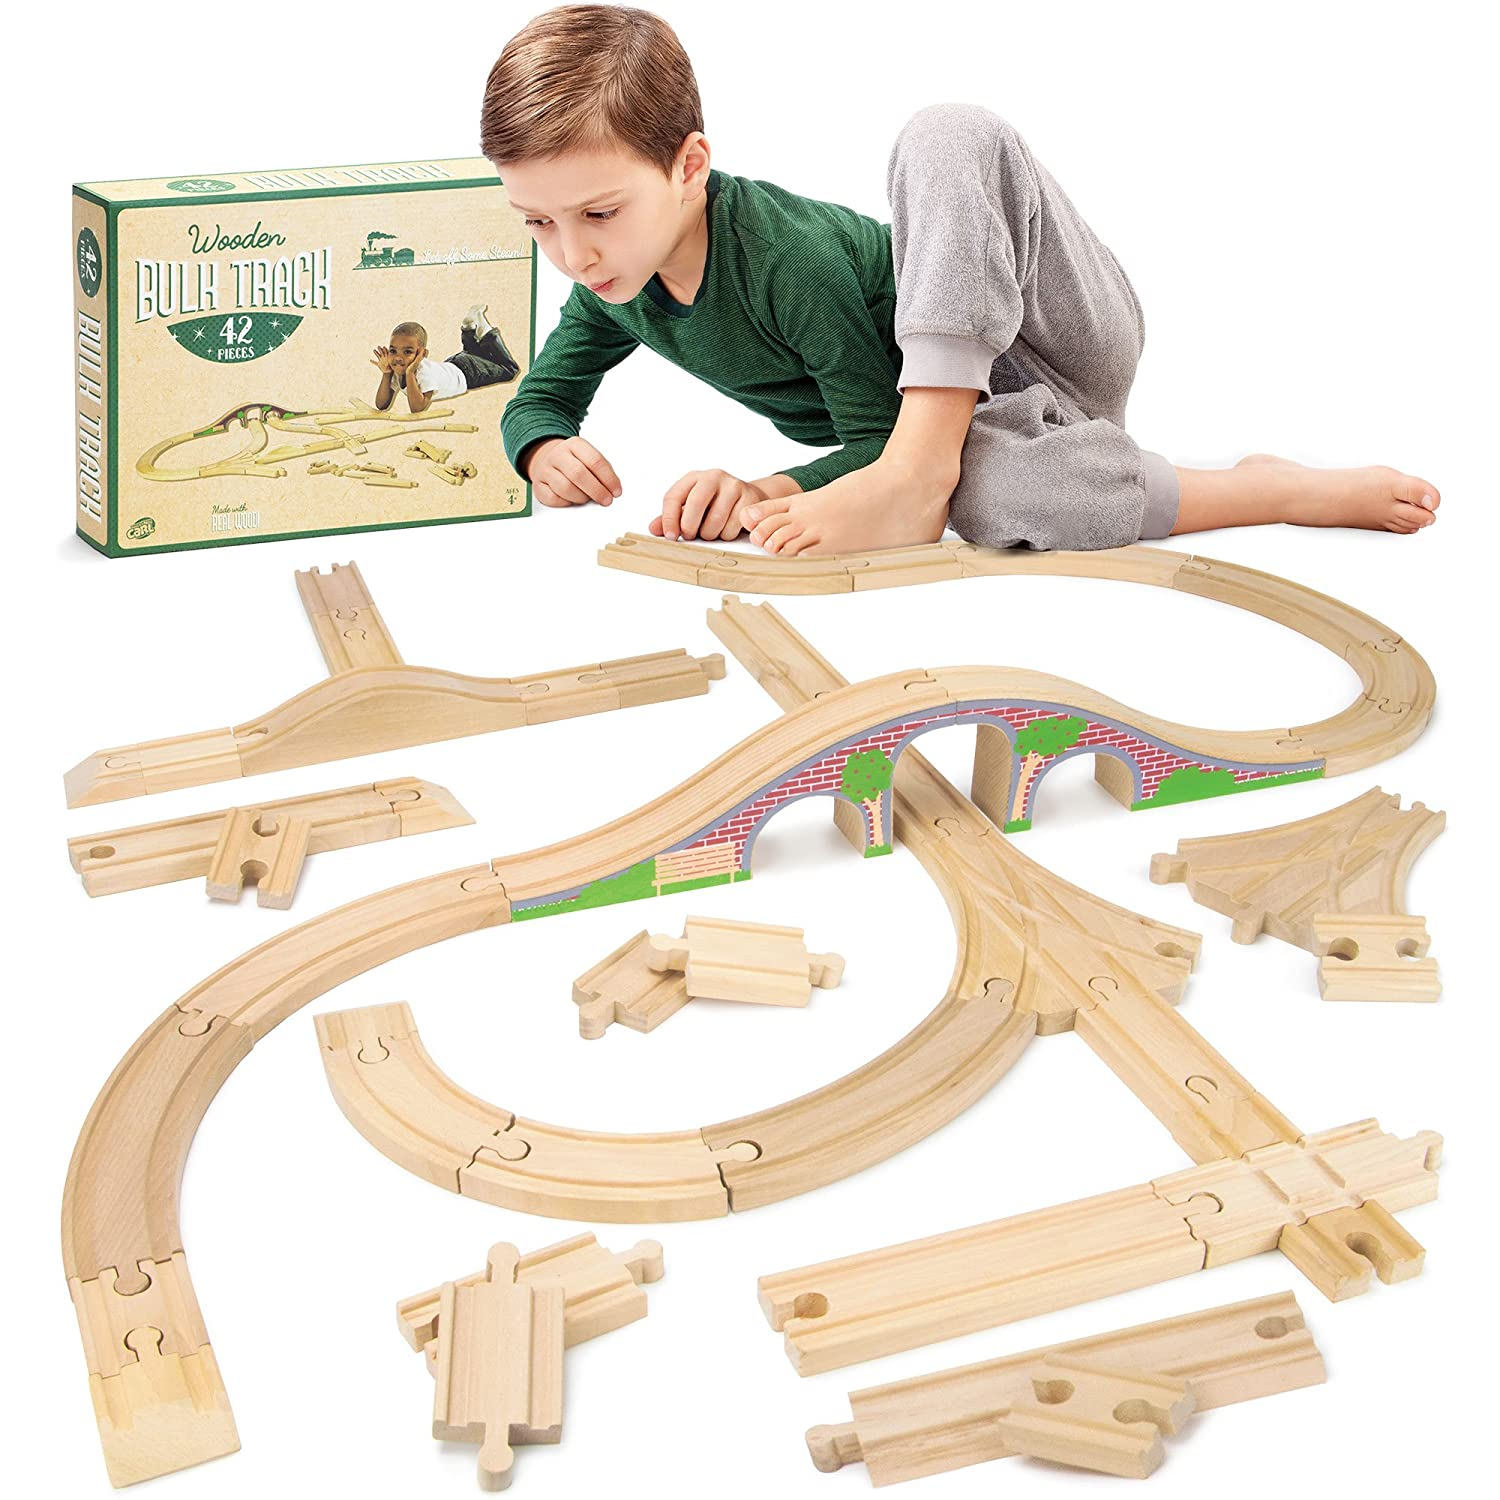 42 piece Bulk Value Wooden Train Track Booster Pack with Red Brick Bridge Compatible with All Major Toy Train Brands by Conductor Carl